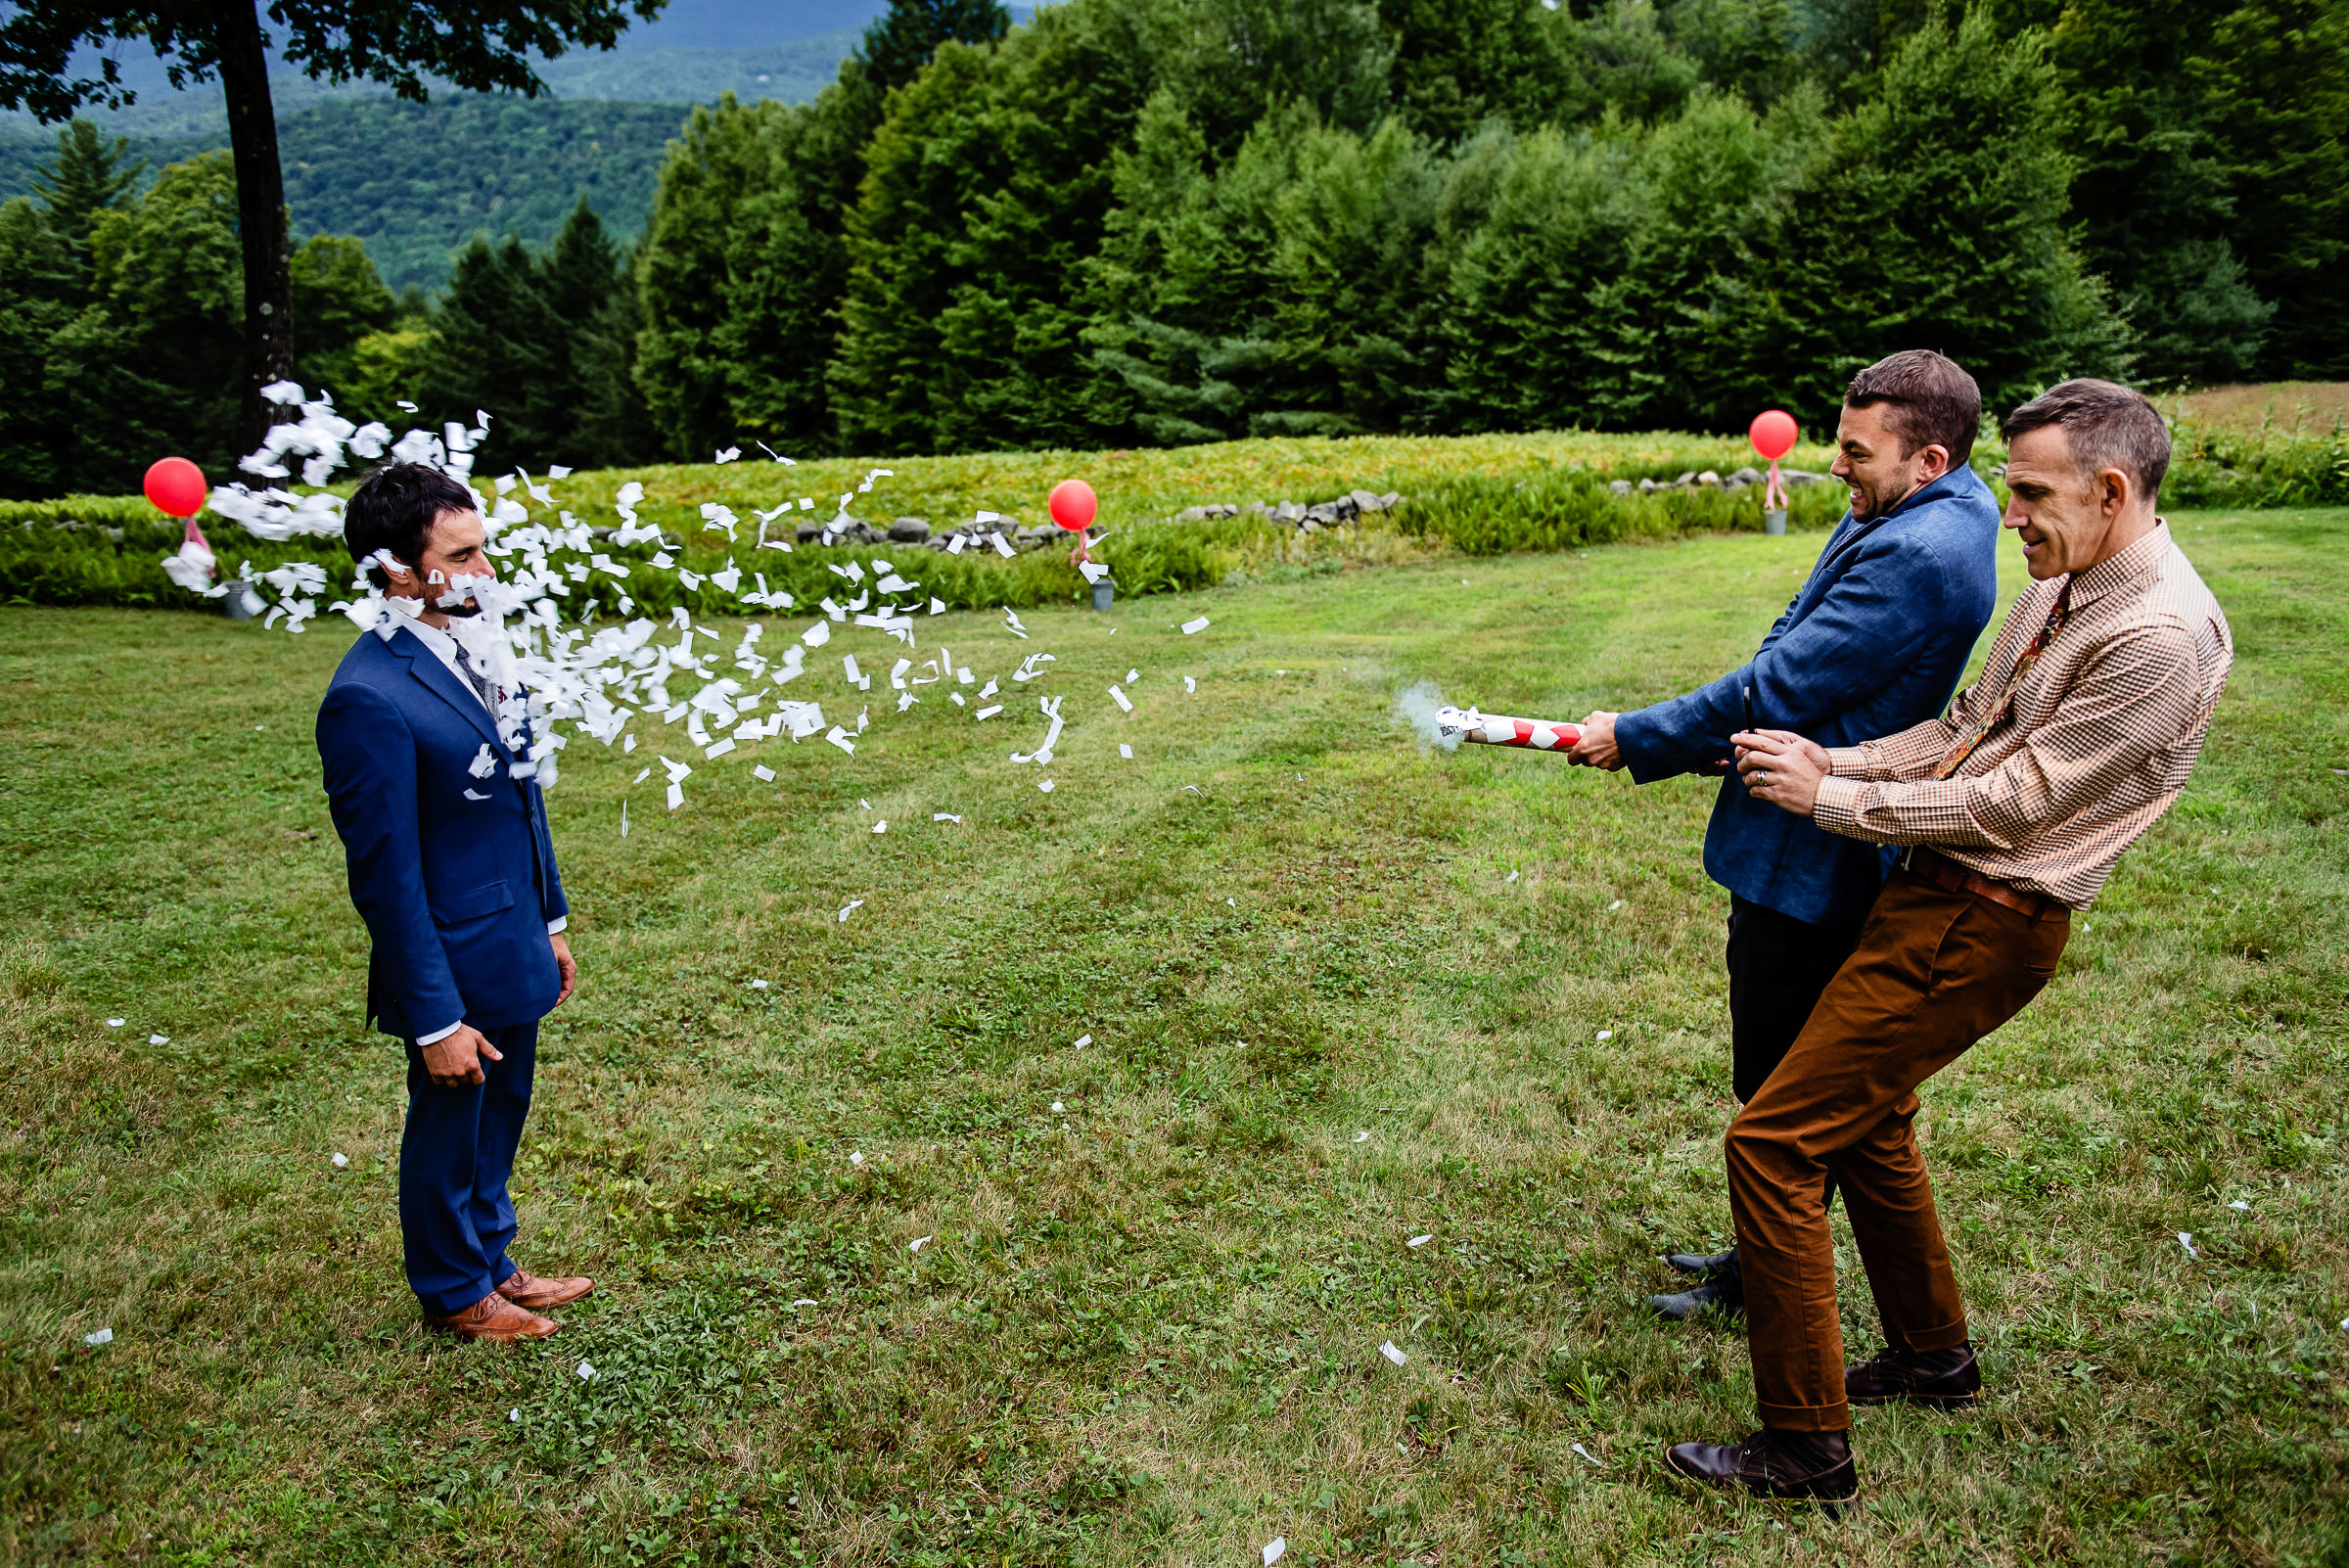 guests-being-playful-with-the-groom-photo-by-hannah-photography